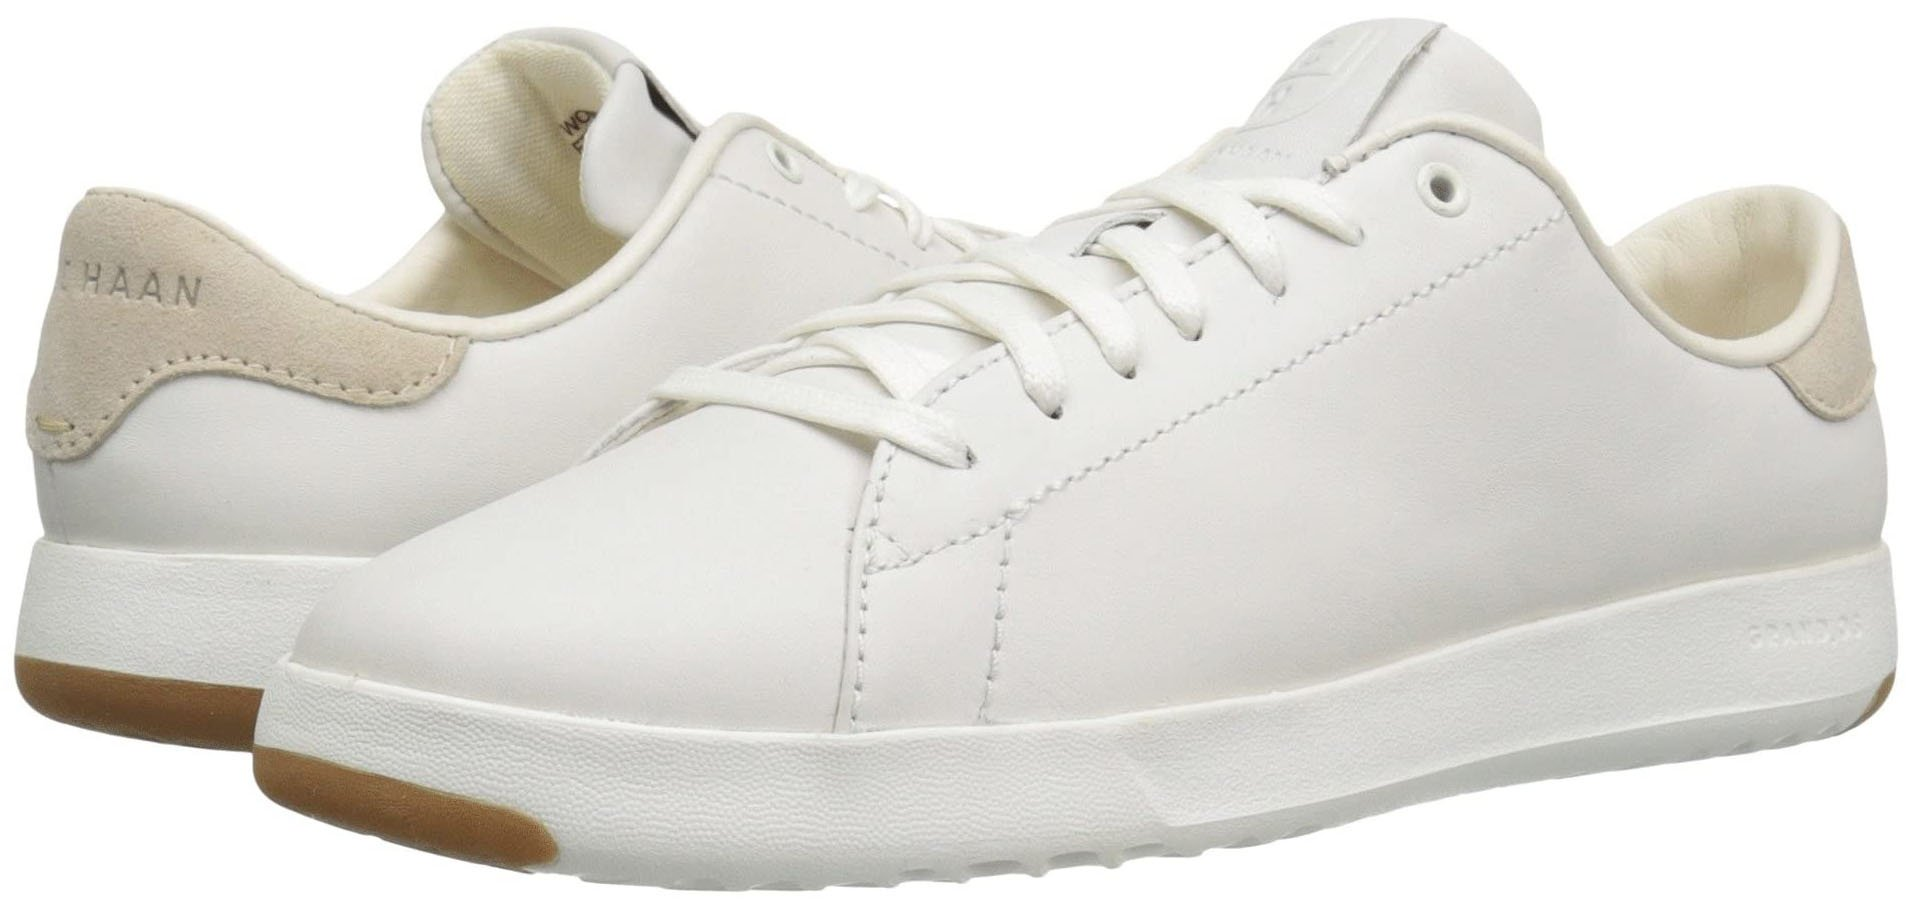 Cole Haan's GrandPro Tennis sneakers are a classic with a smooth leather upper and rubber sole